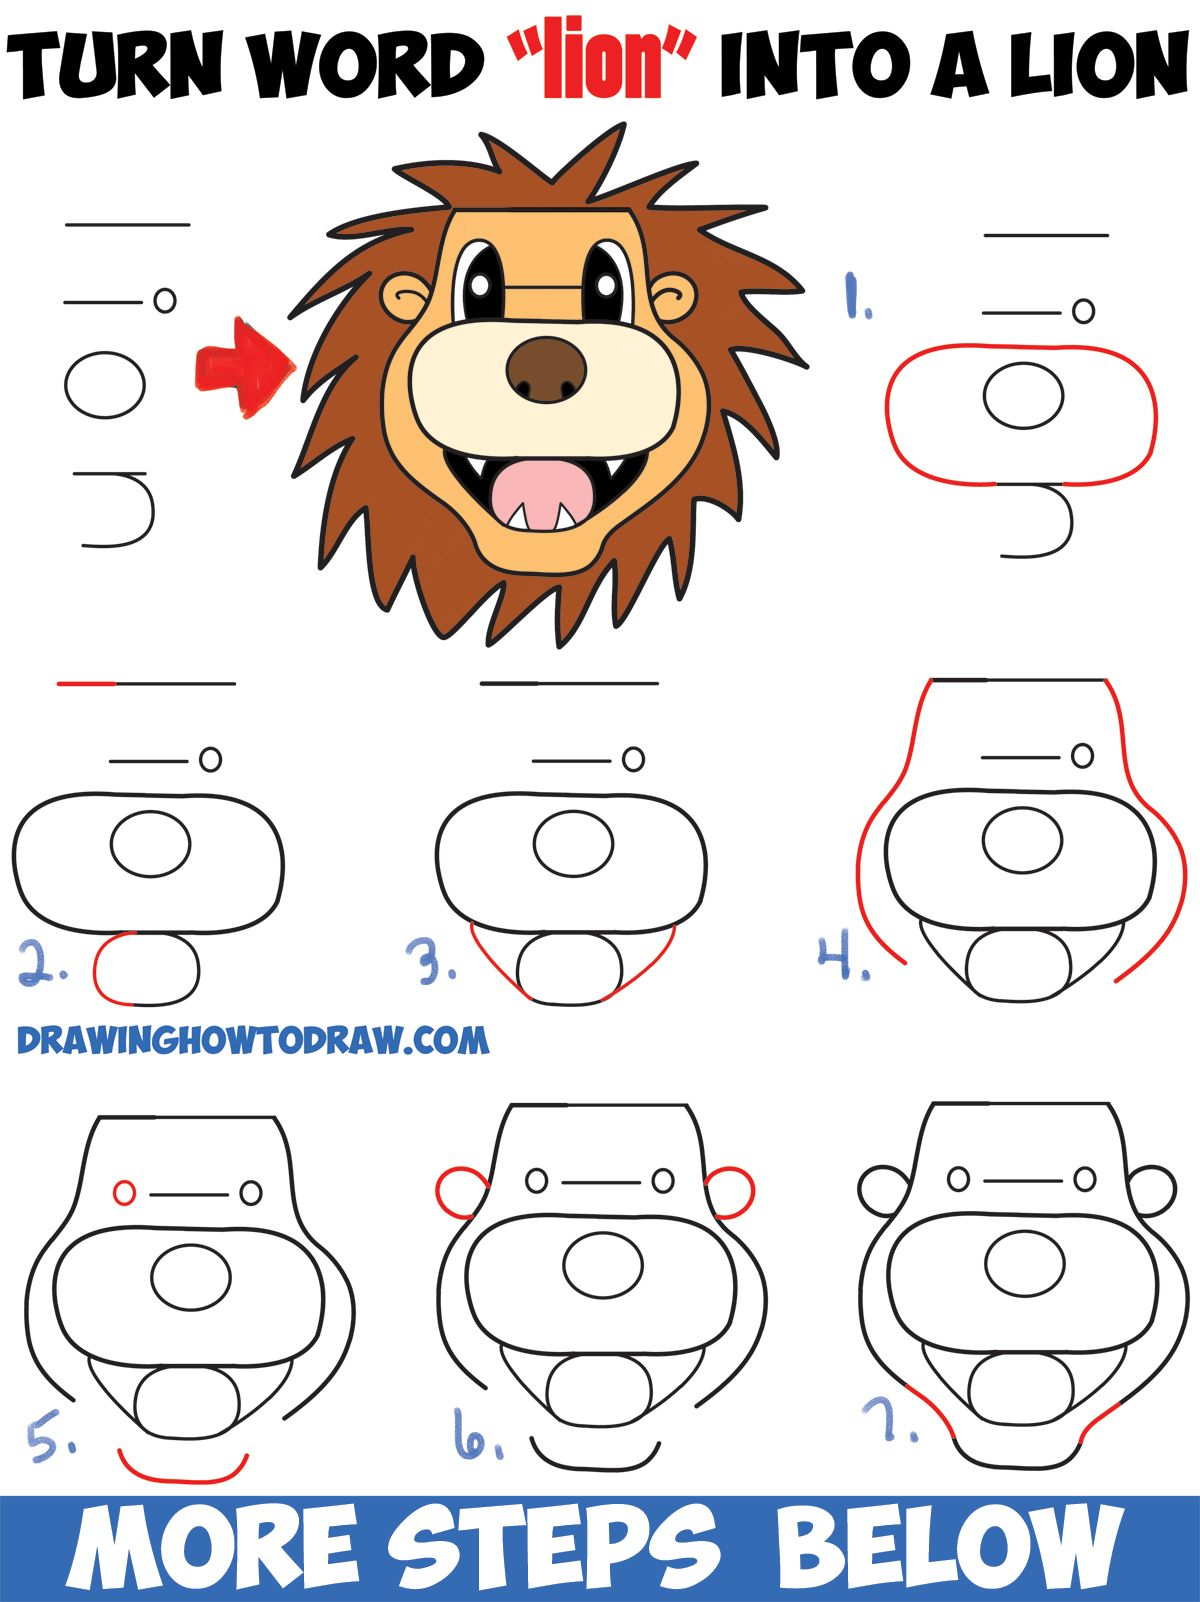 How to turn the word lion into a cartoon lion easy step by step drawing tutorial for kids